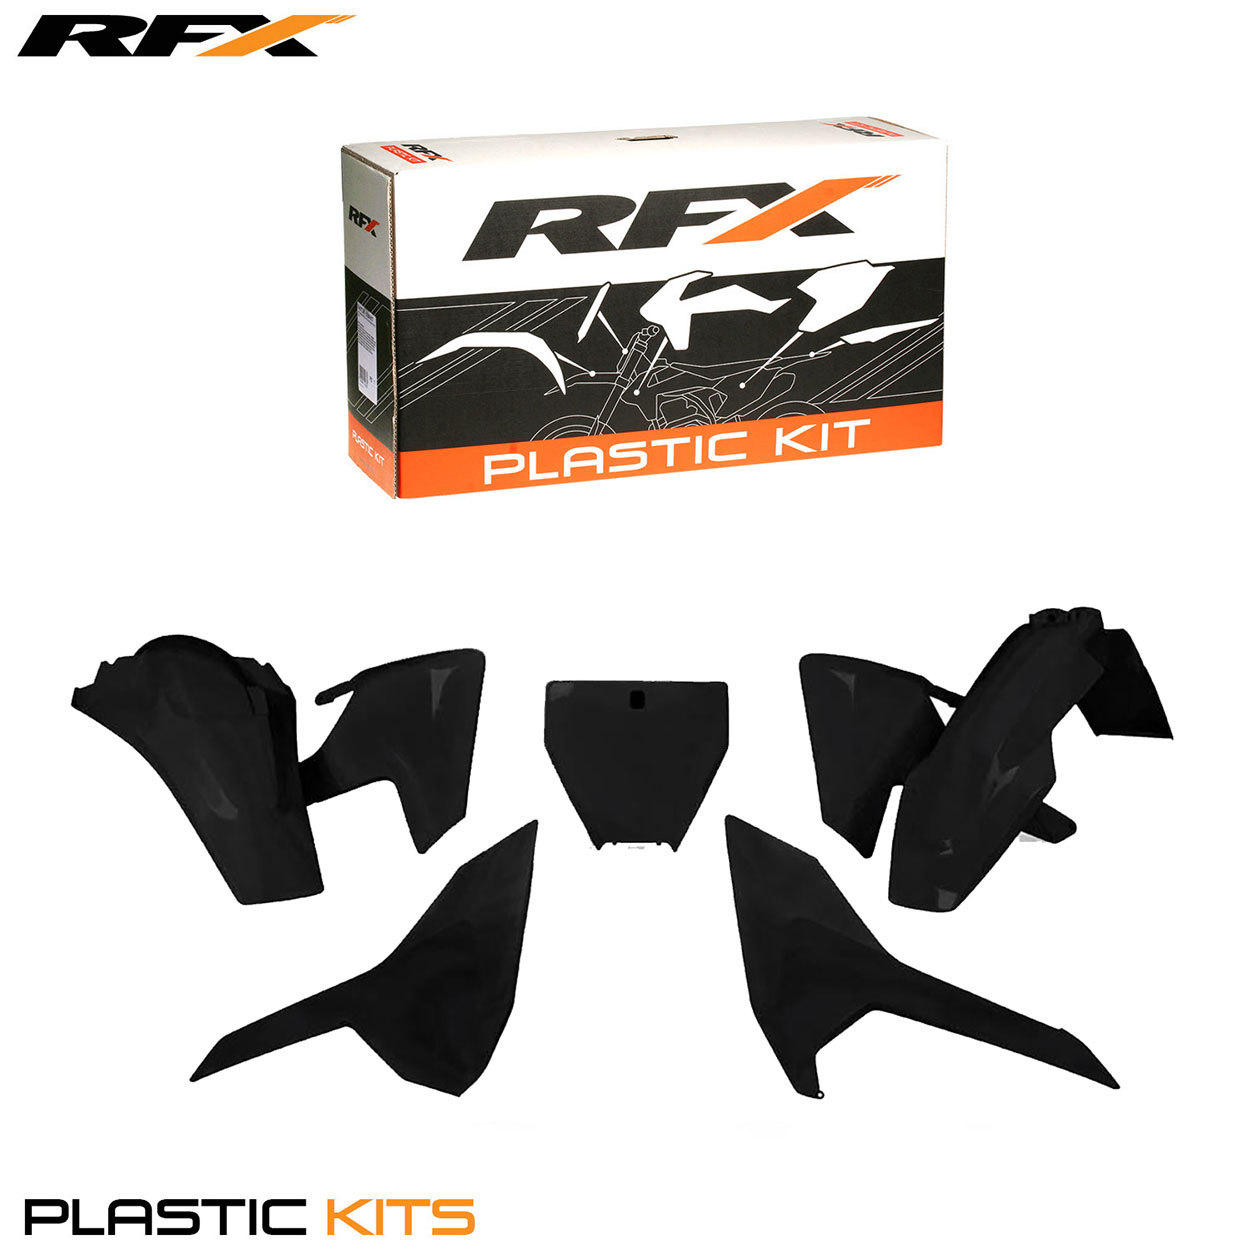 RFX Plastic Kit Husqvarna (Black) TC125 2016 FC250-350-450 2016 (5 Pc Kit)